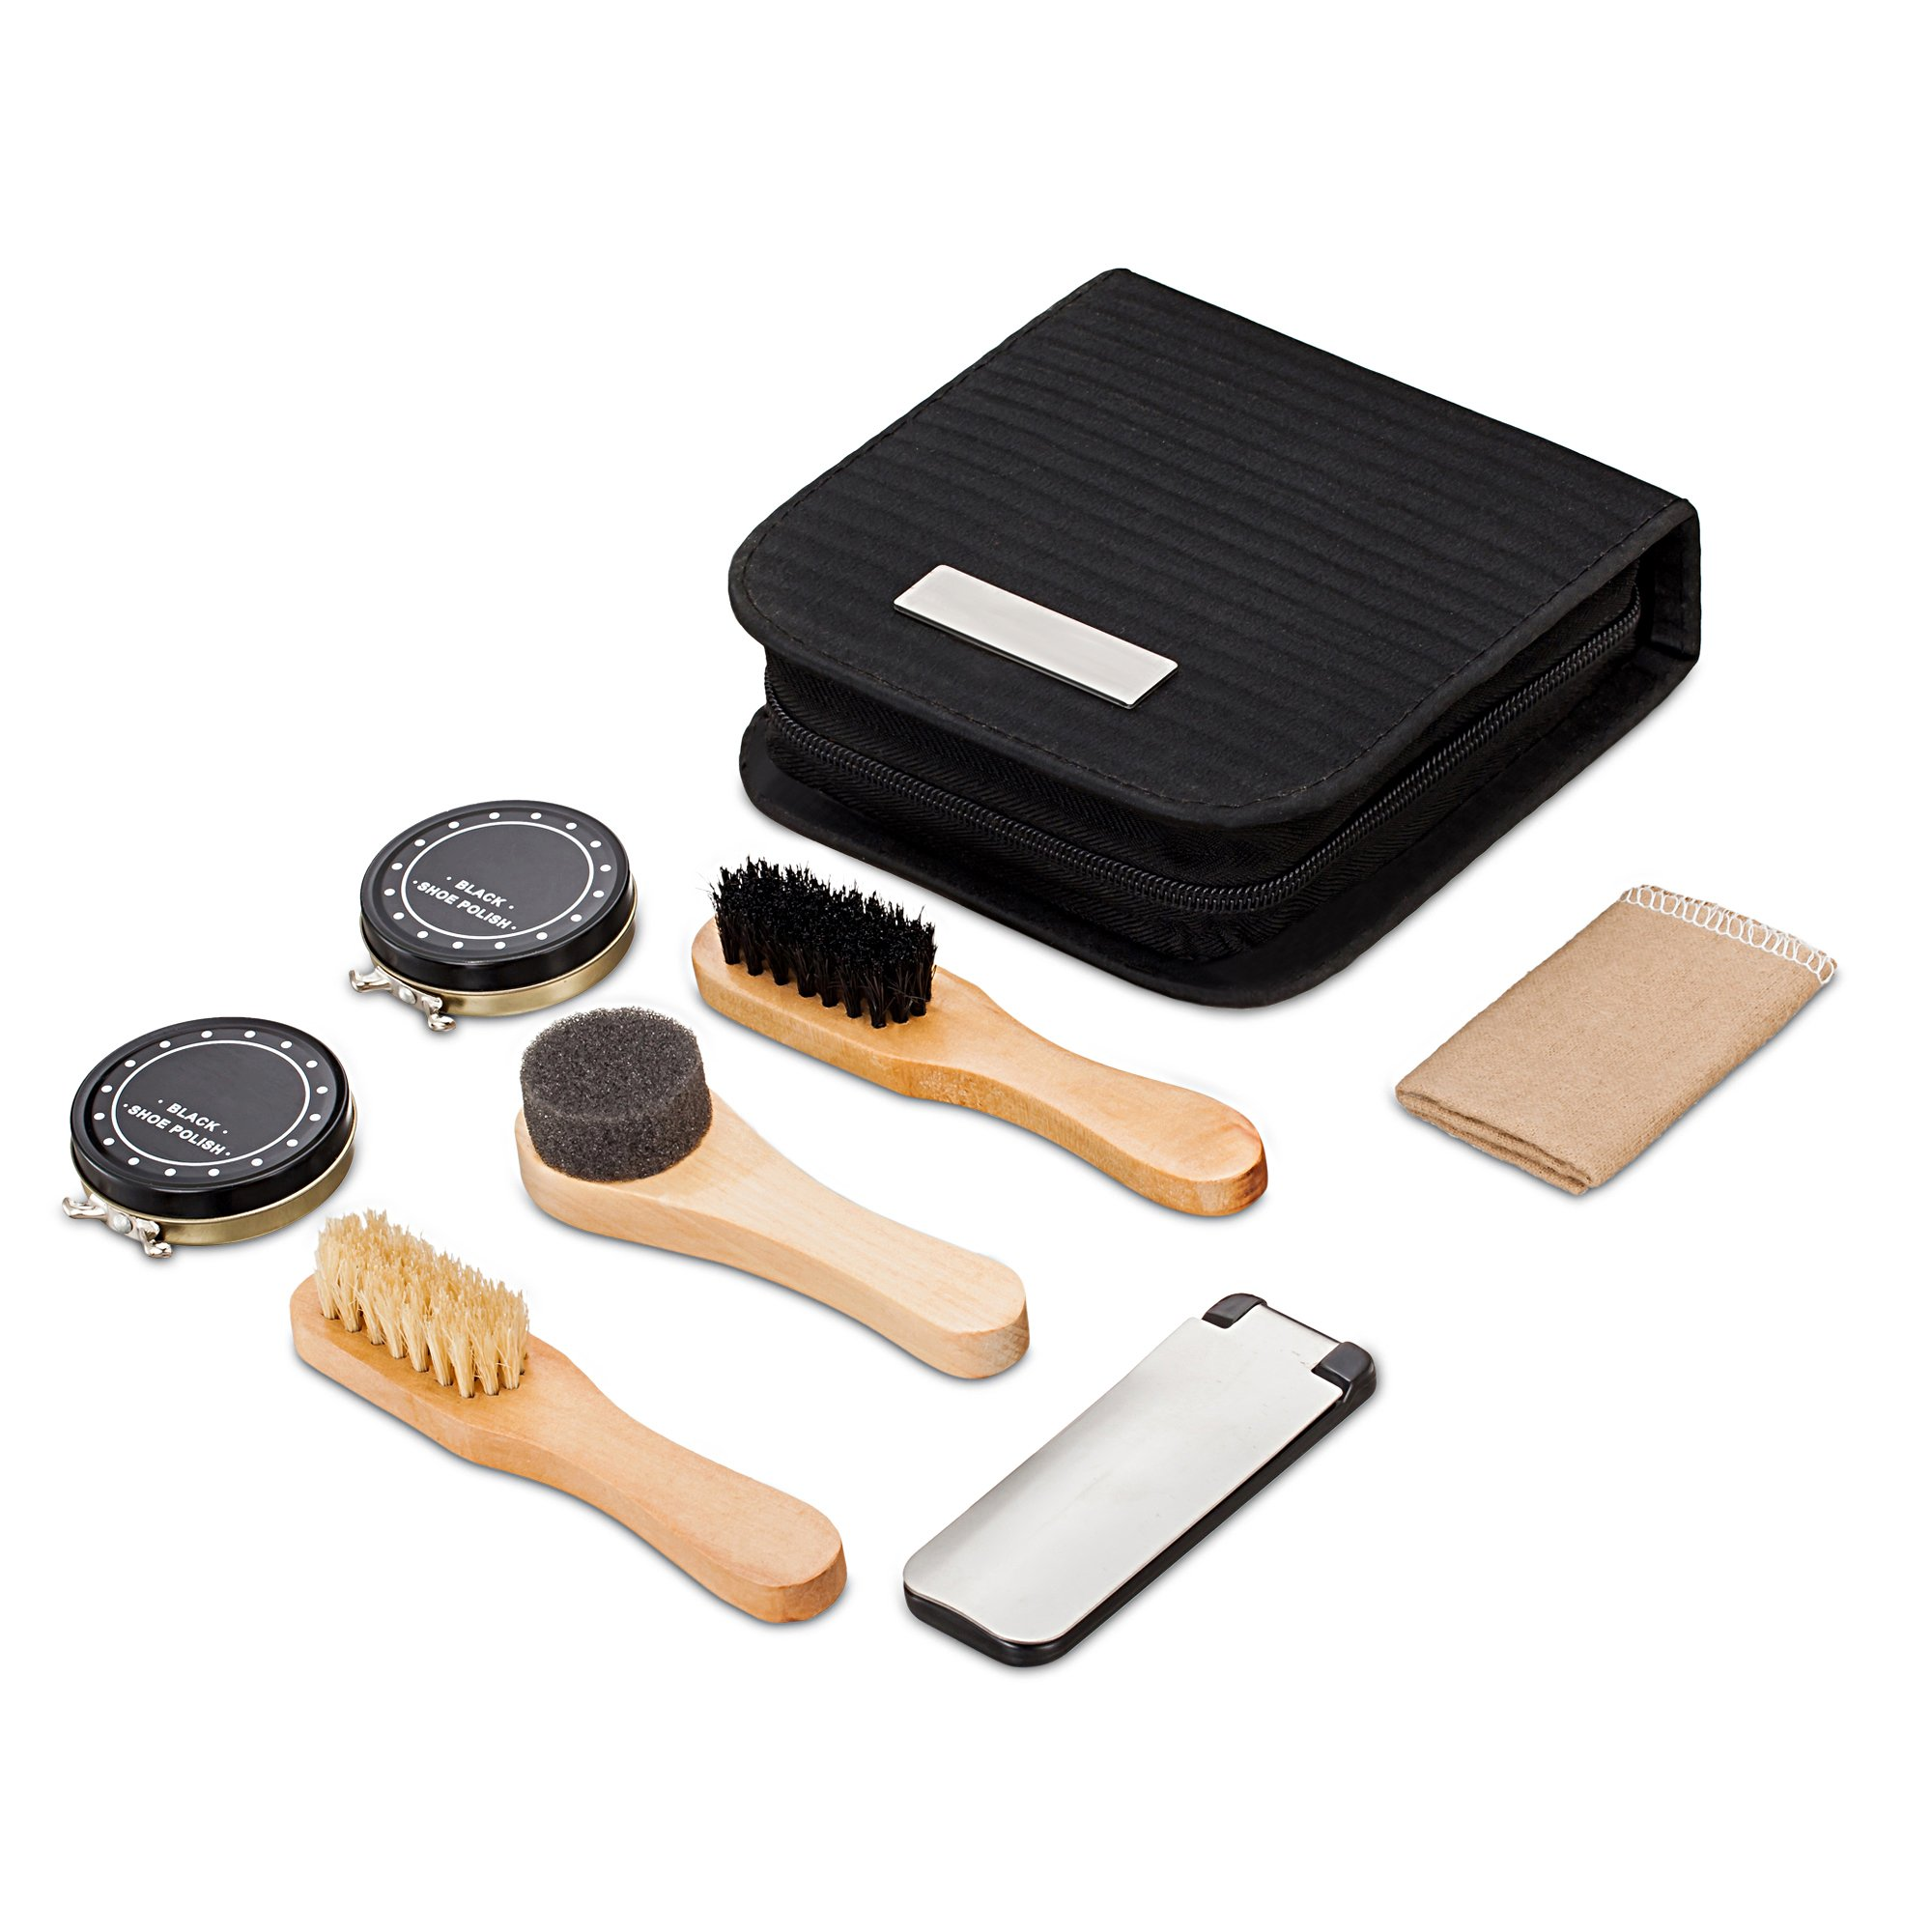 chuanyuekeji Shoe Shine Kit & Shoe Care Valet with PU Leather Sleek Elegant Case, 7-Piece Travel Shoe Shine Brush kit (Black)